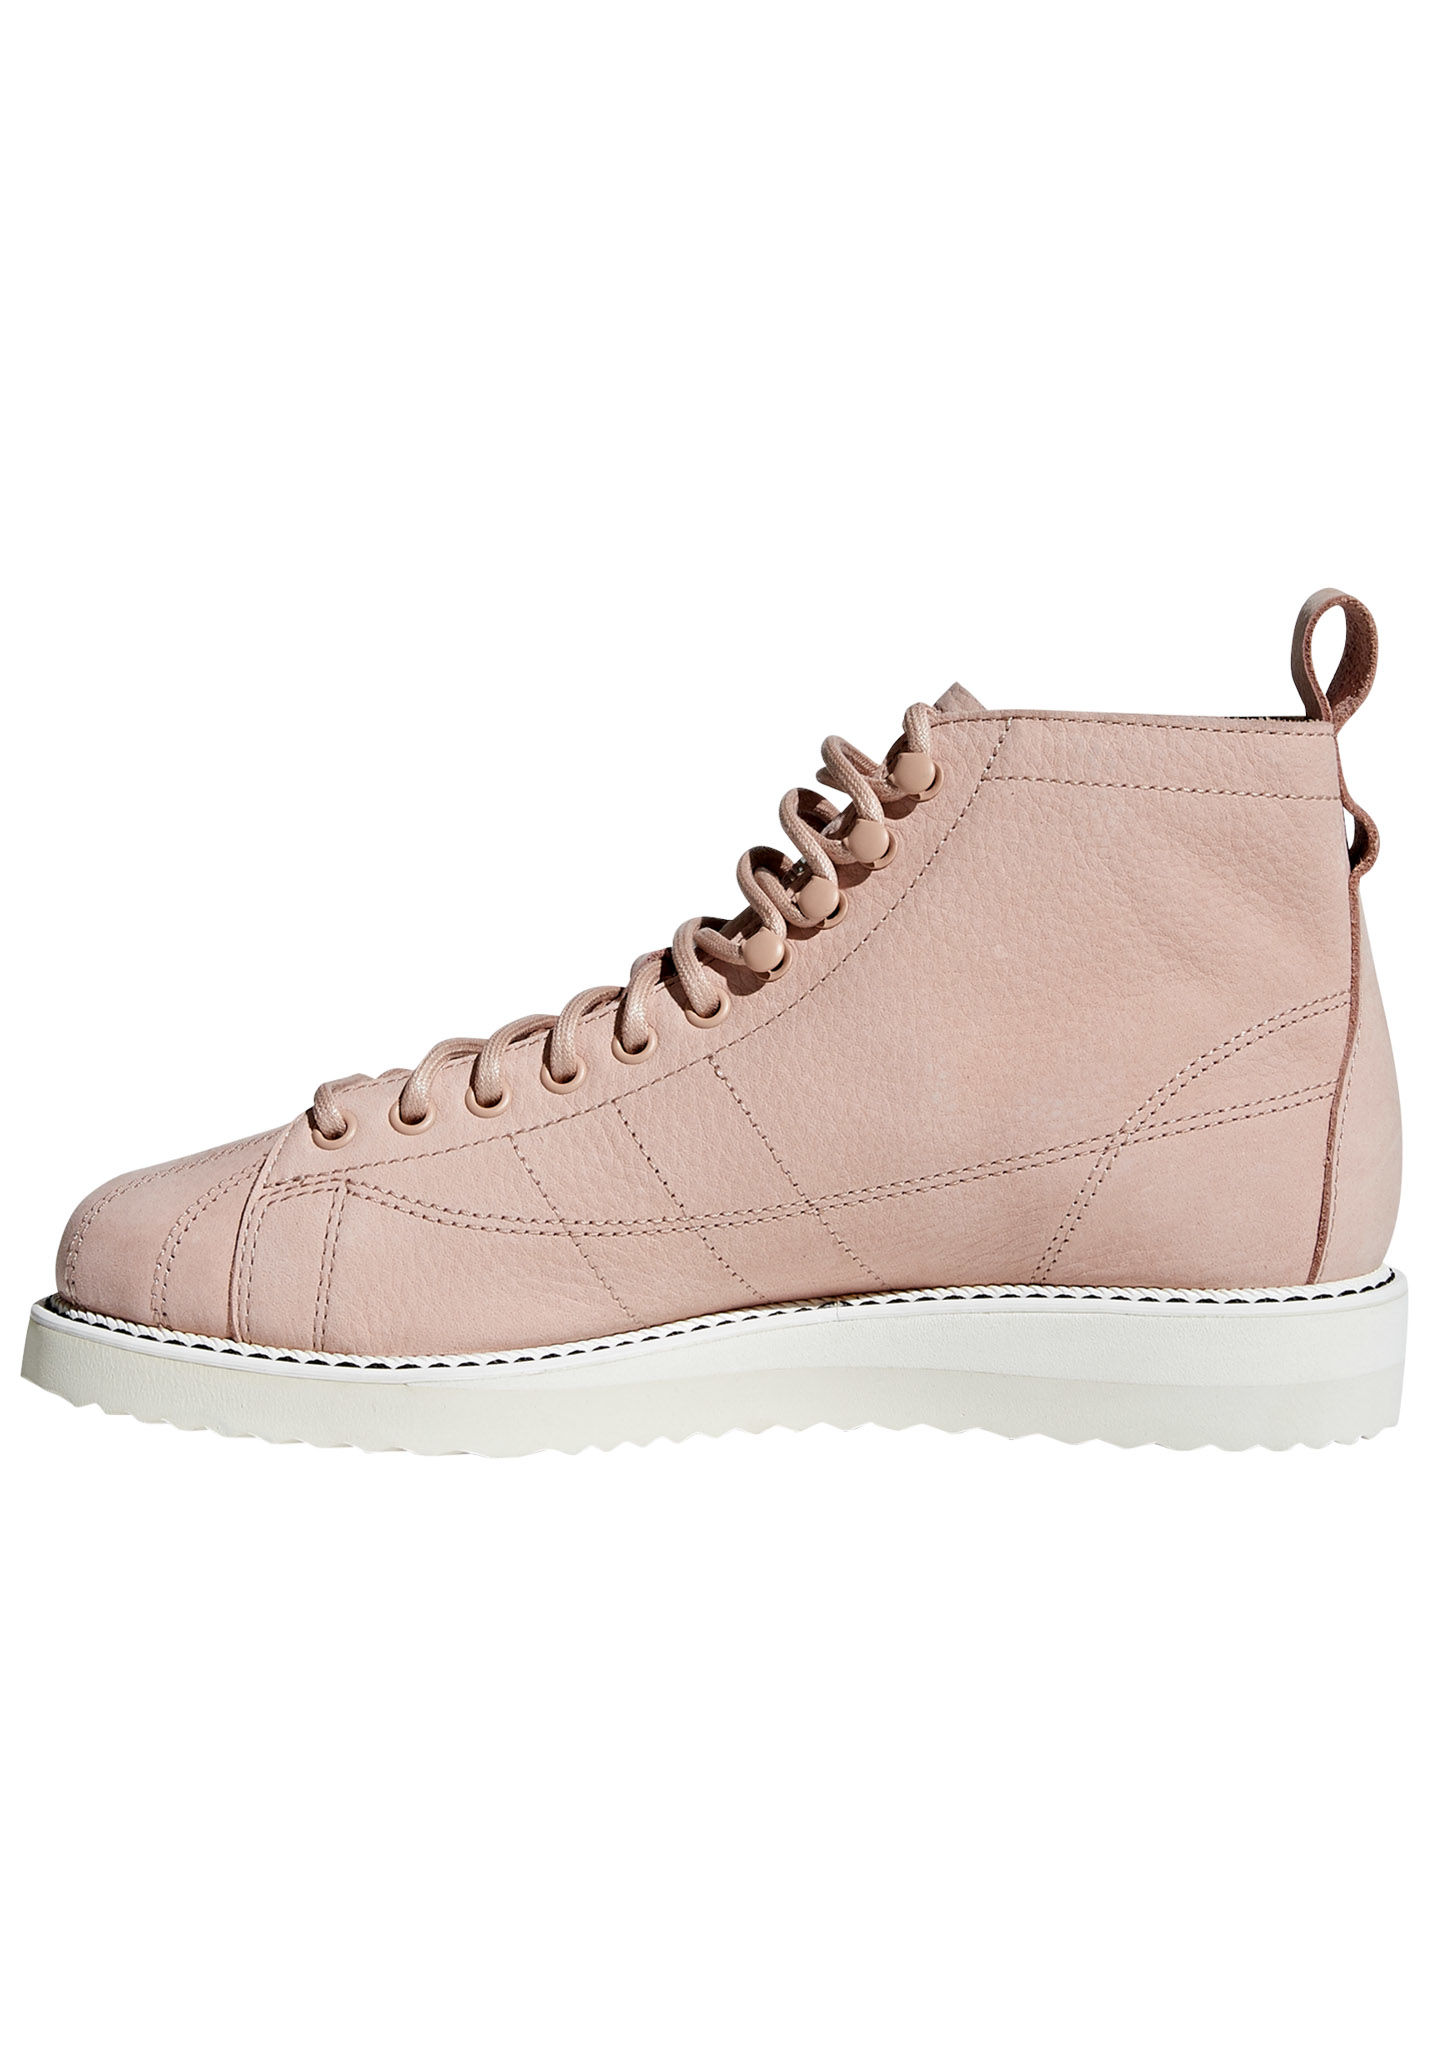 45f442f3e ADIDAS ORIGINALS Superstar Boot - Sneakers for Women - Pink - Planet Sports